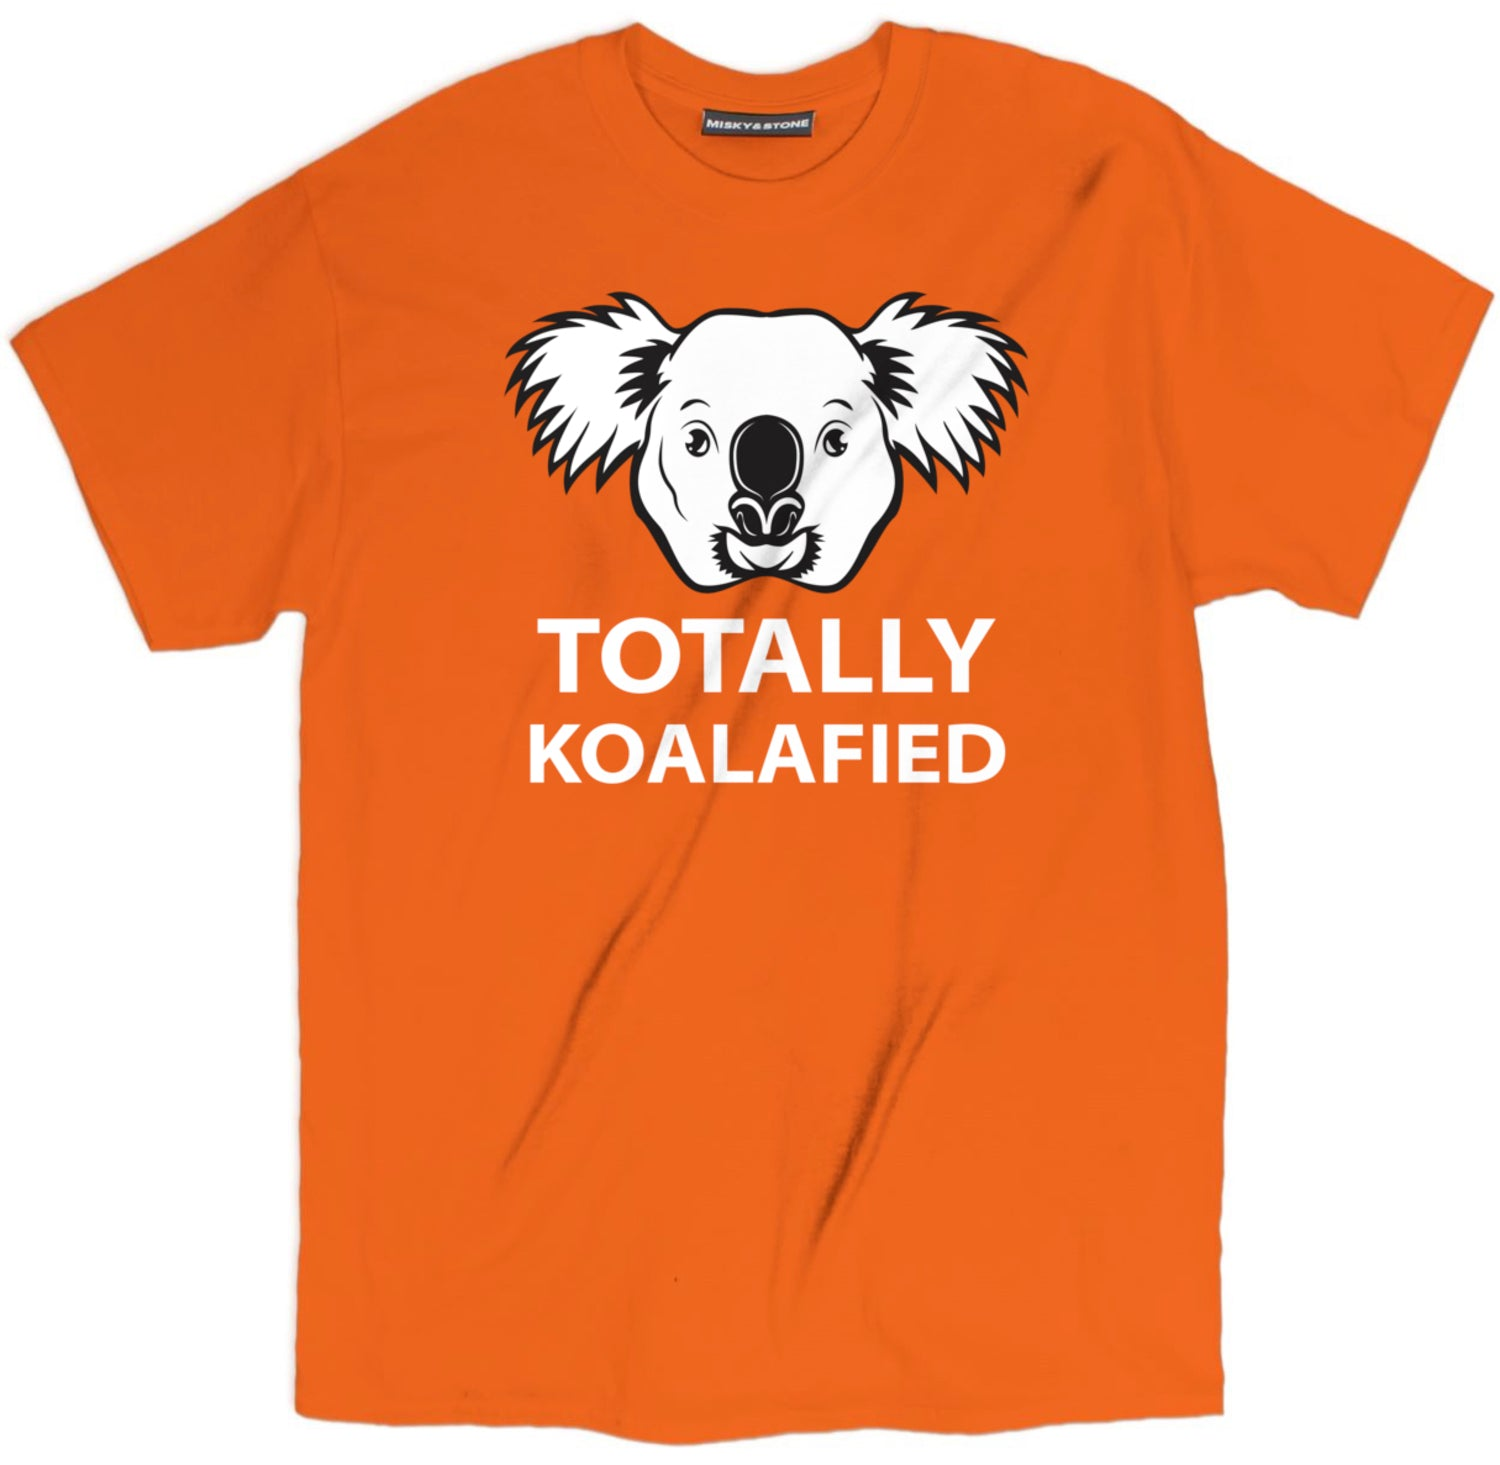 Totally Koalafied Tee